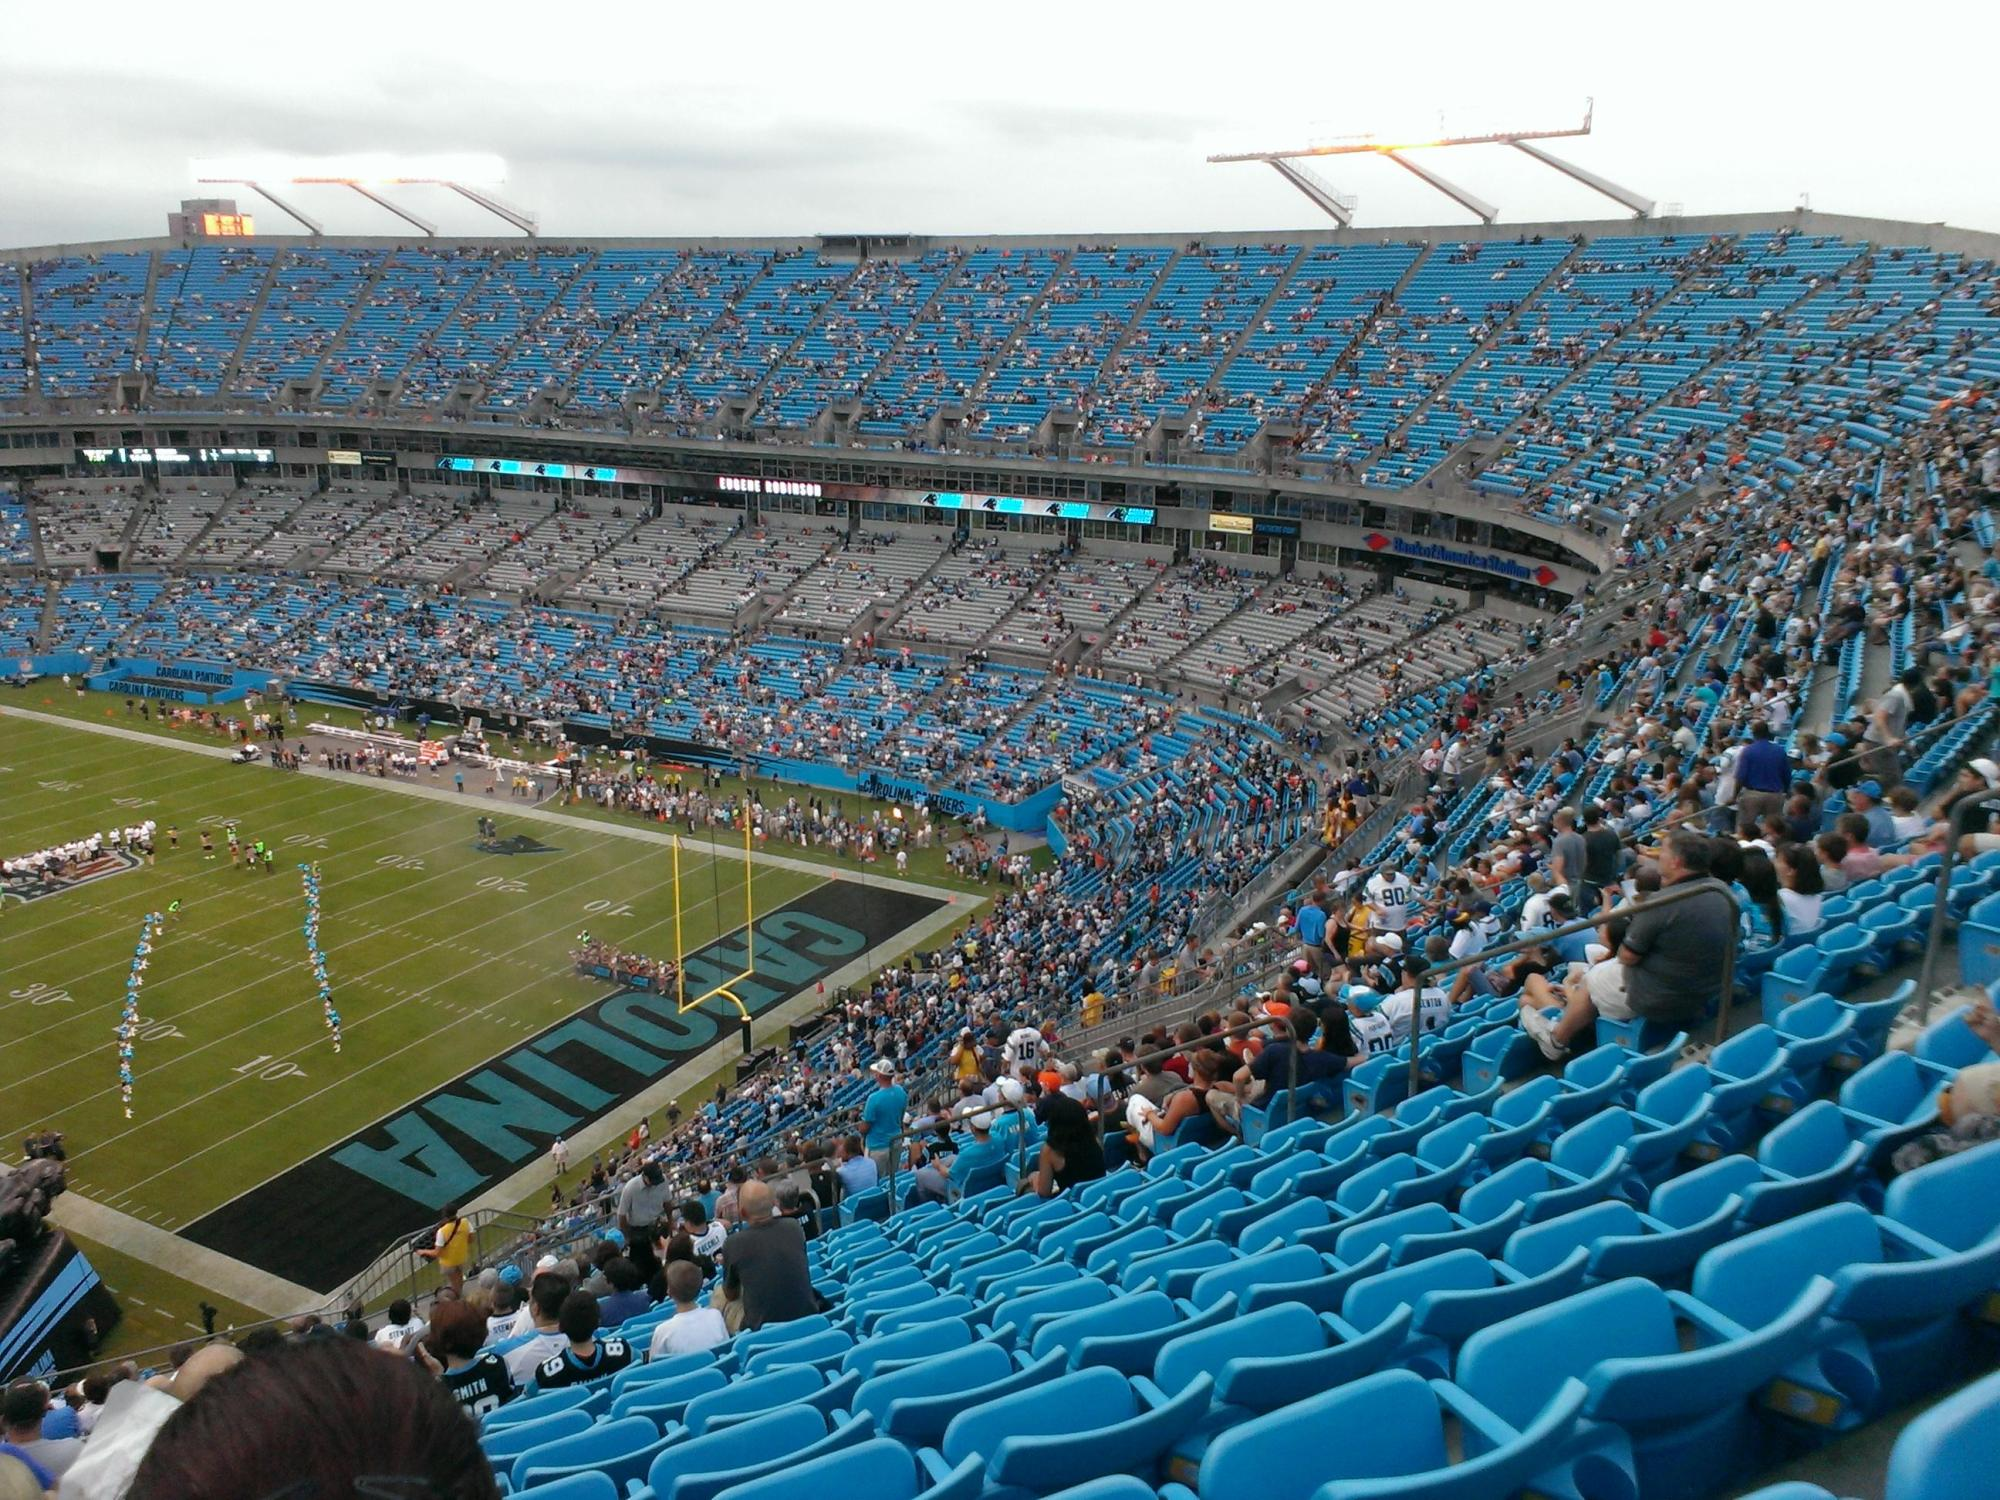 hight resolution of bank of america stadium section 506 row 22 seat 15 carolina panthers vs chicago bears shared by pyrosnine